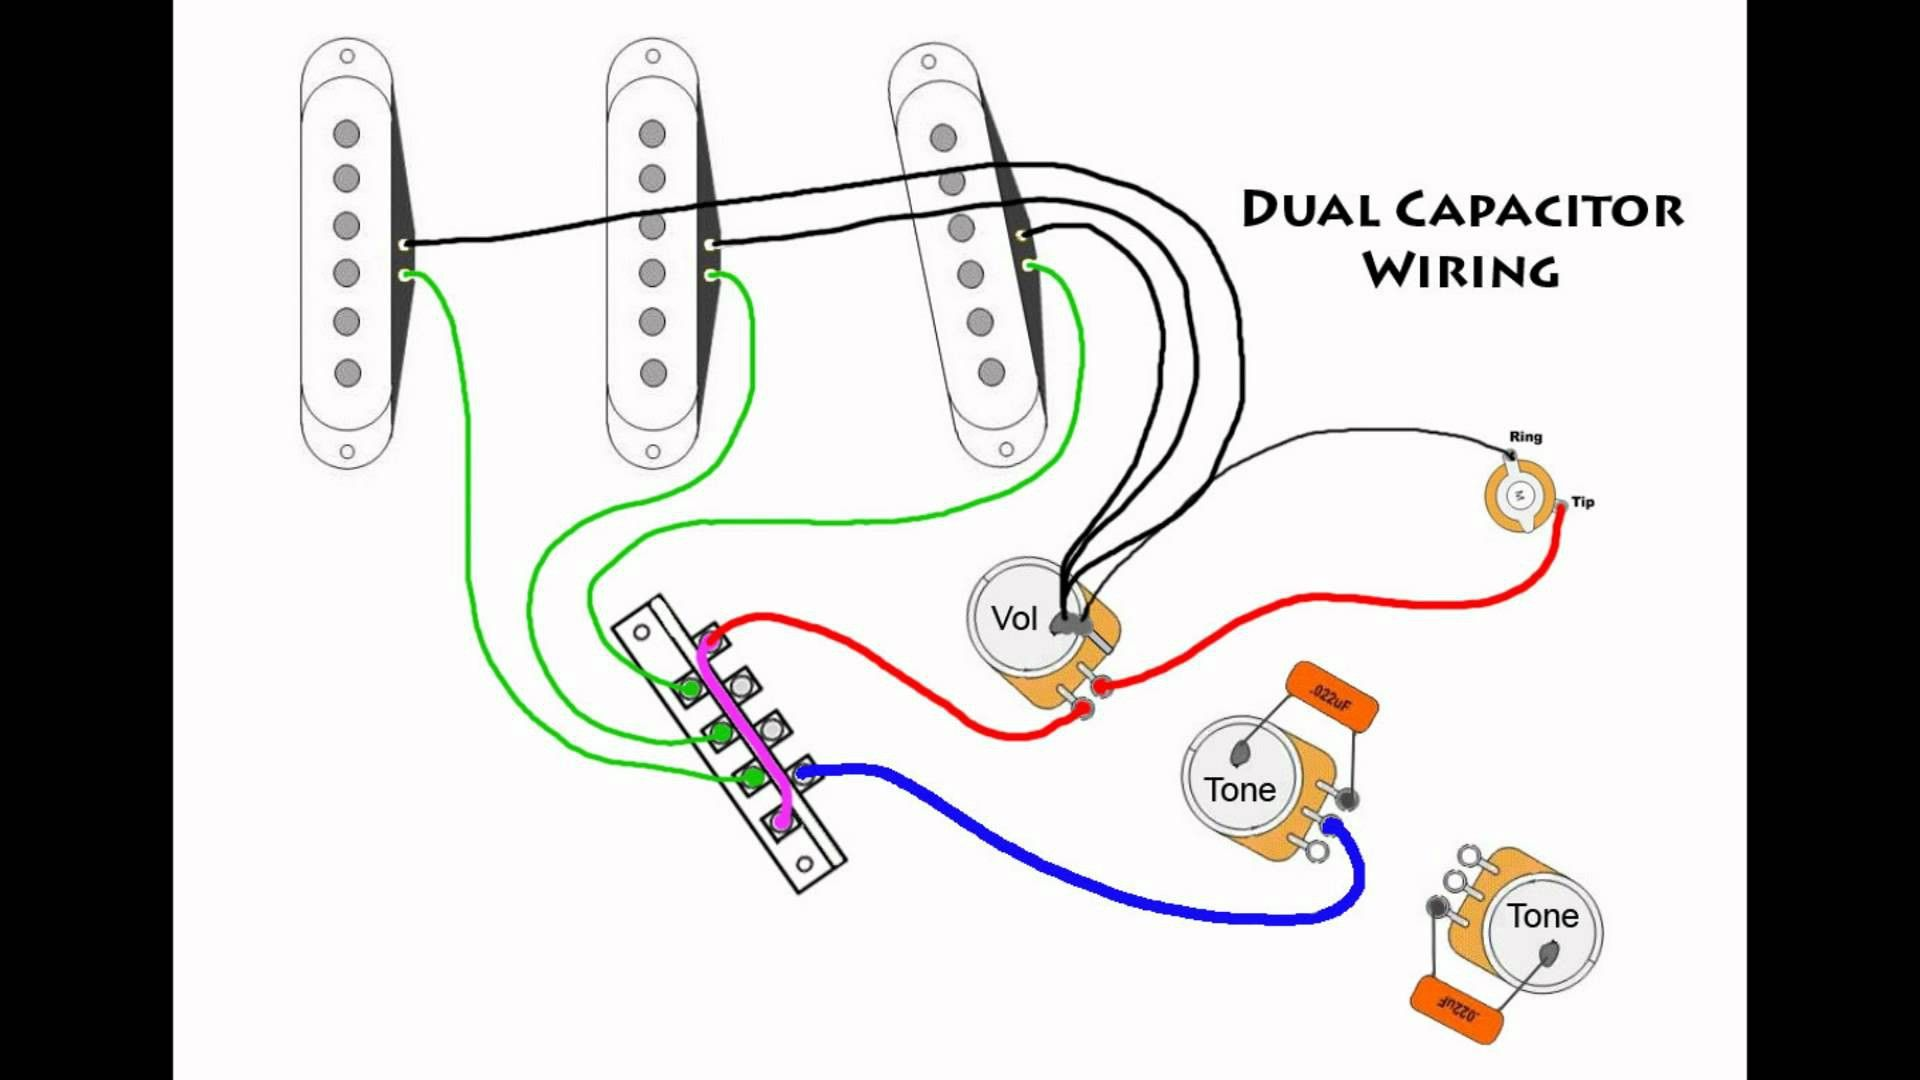 medium resolution of fender stratocaster wiring diagram best of strat throughout diagrams wiring diagram fender telecaster 3 way switch wiring diagram fender